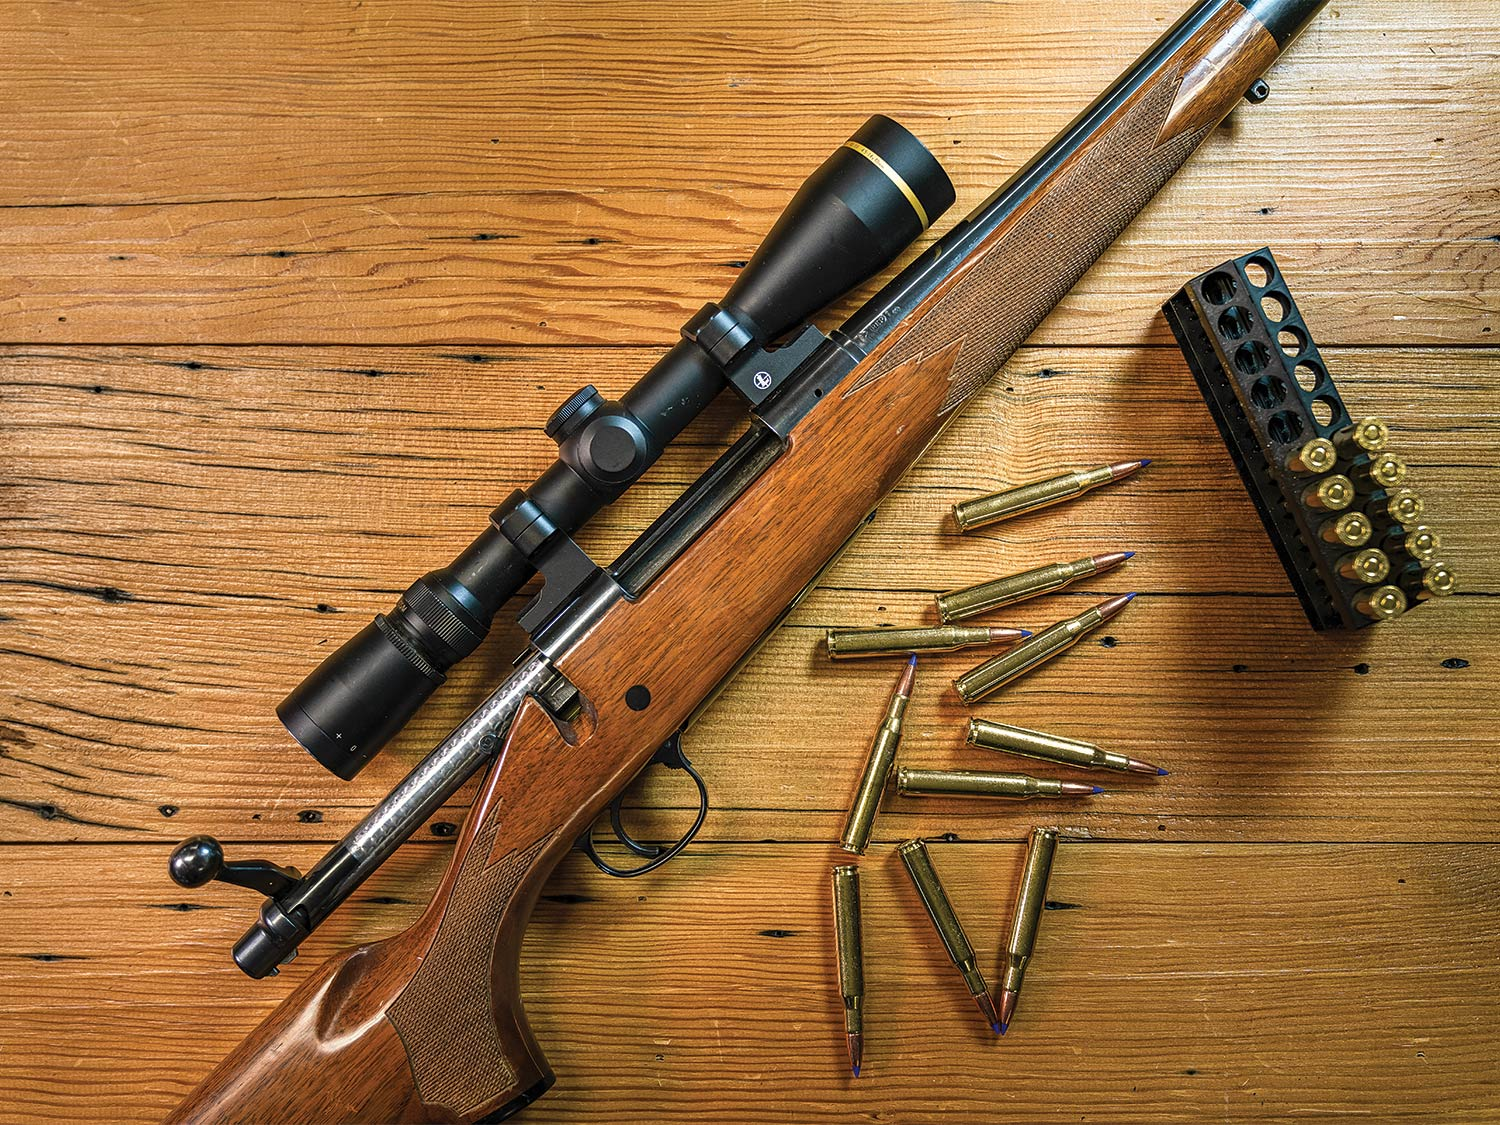 An upgraded Remington rifle.